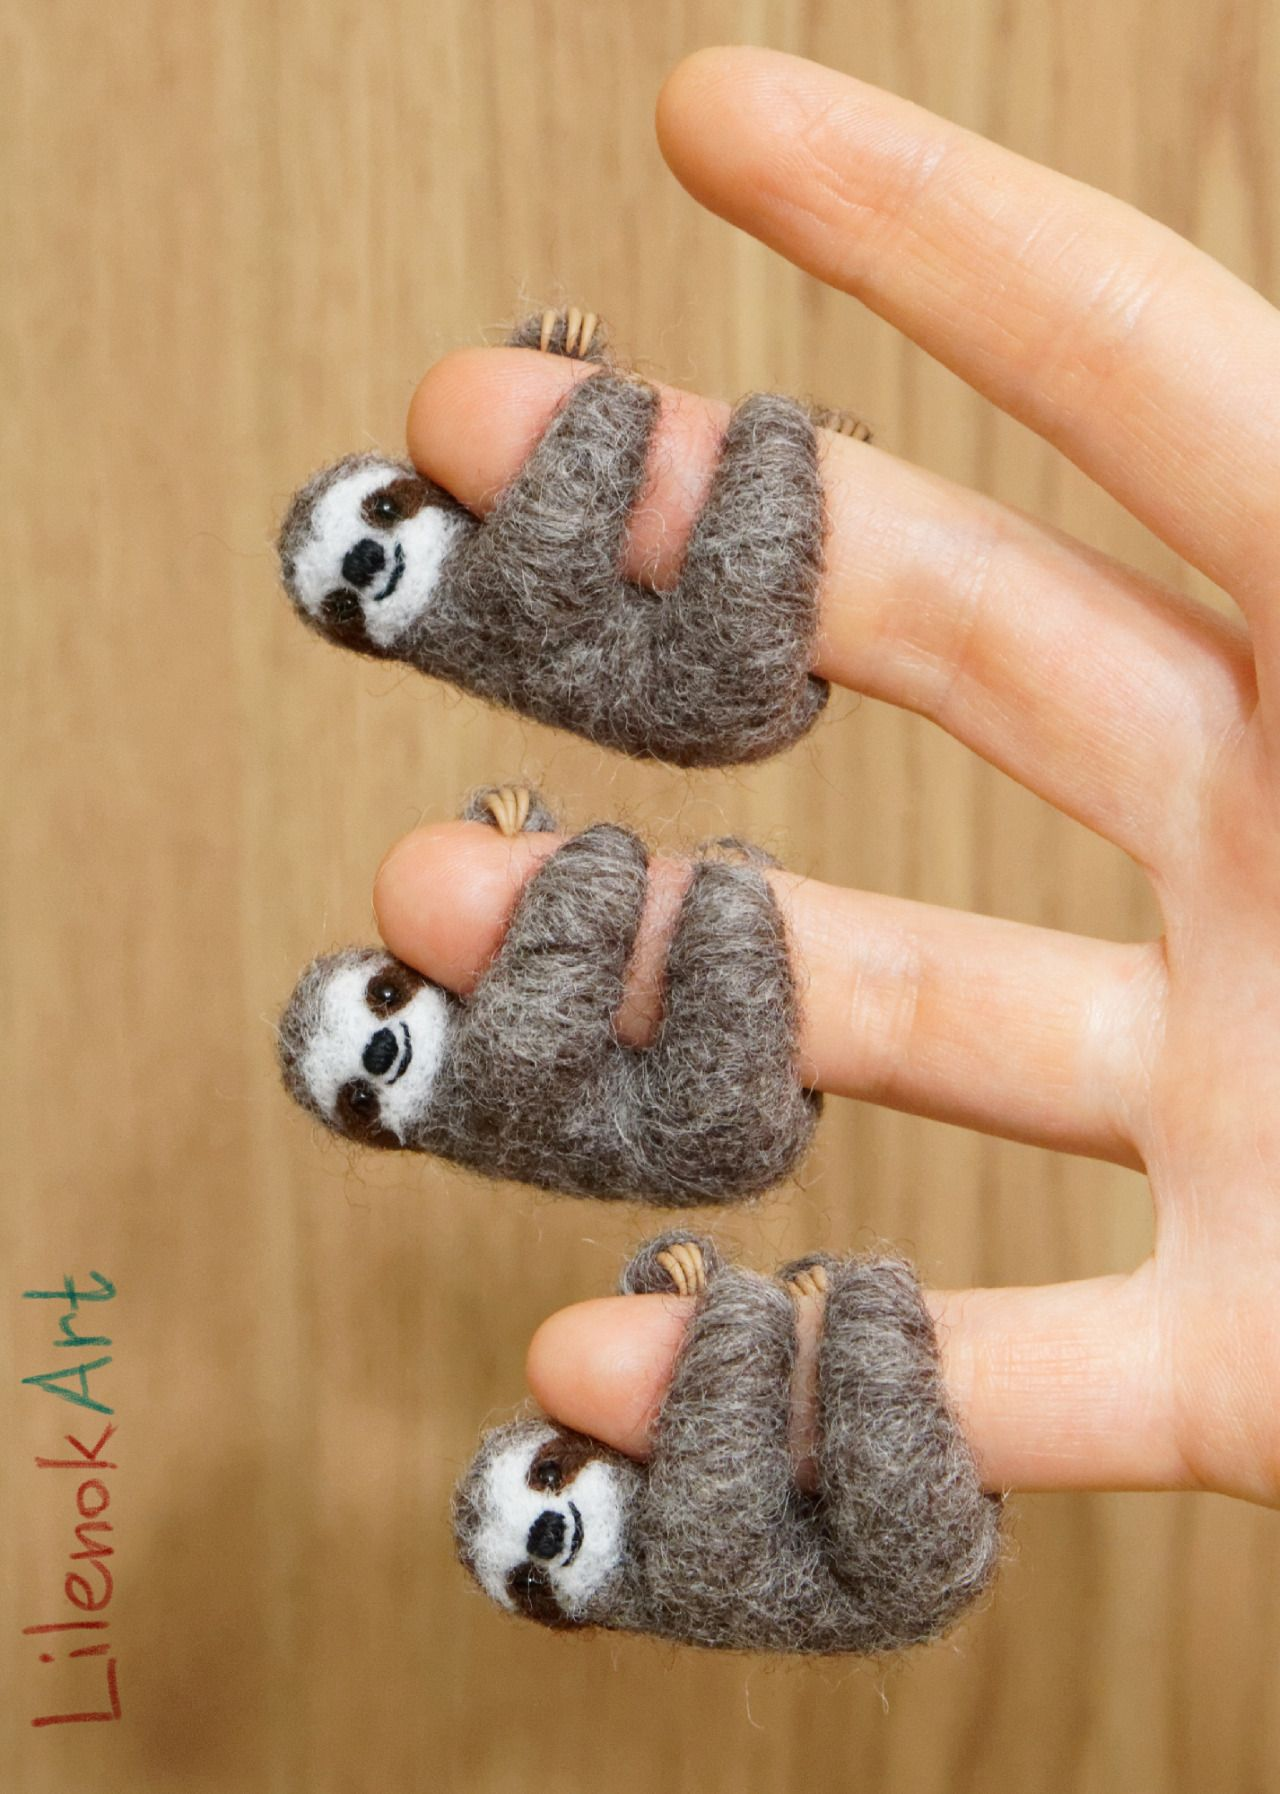 Handmade needle felted decor by LilenokArt #feltedwoolanimals